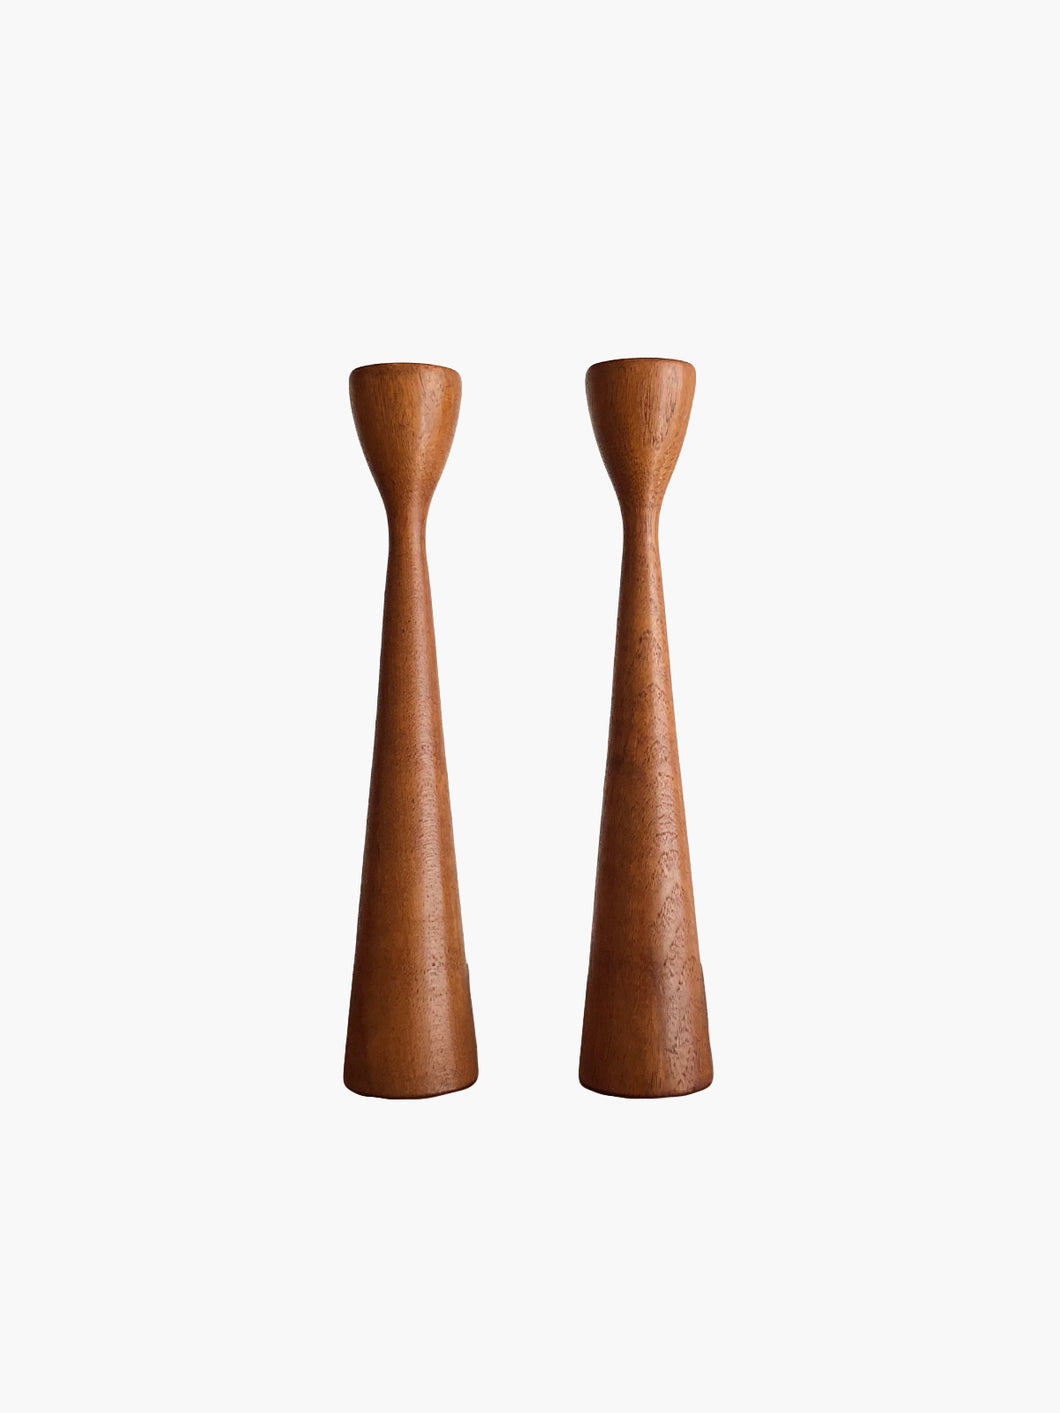 Solid Teak Candle Holders